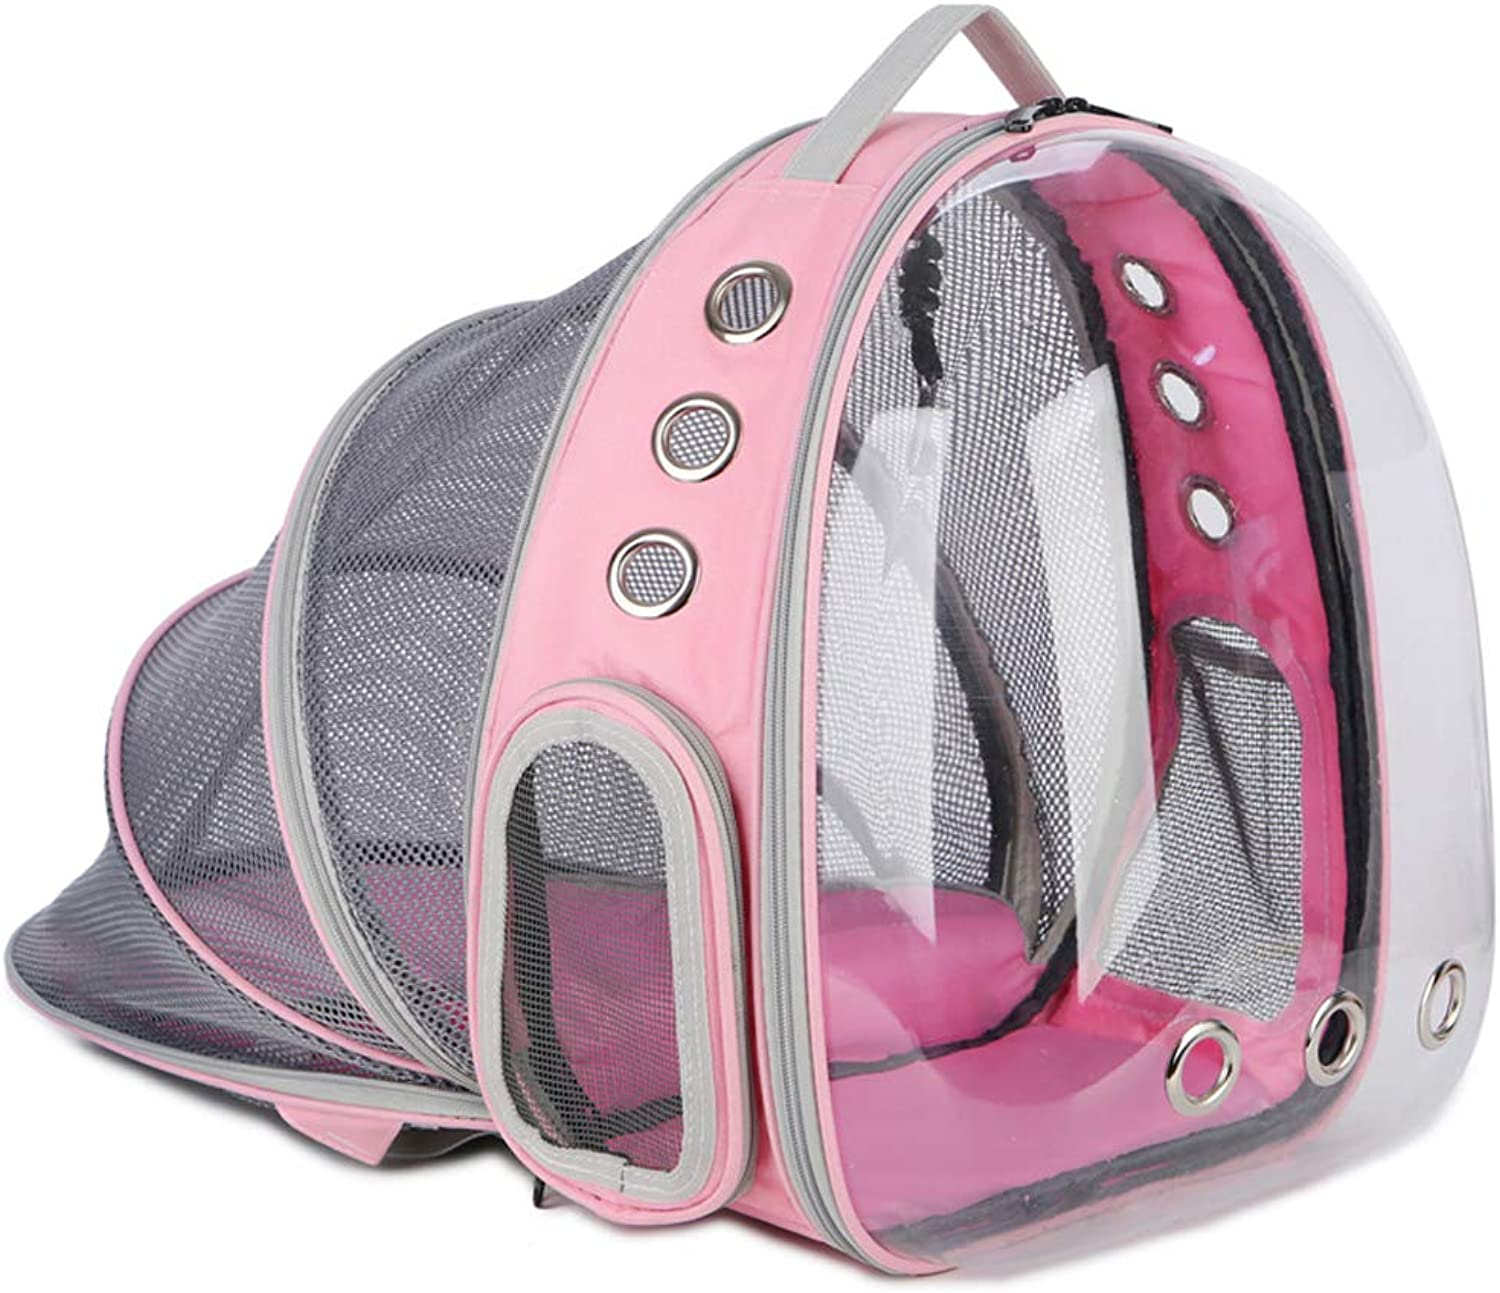 BOZHILIN Pet Backpack Puppy Cat Out Travel Backpack Pet Supplies Shoulders Portable Transparent Pet Space Bag